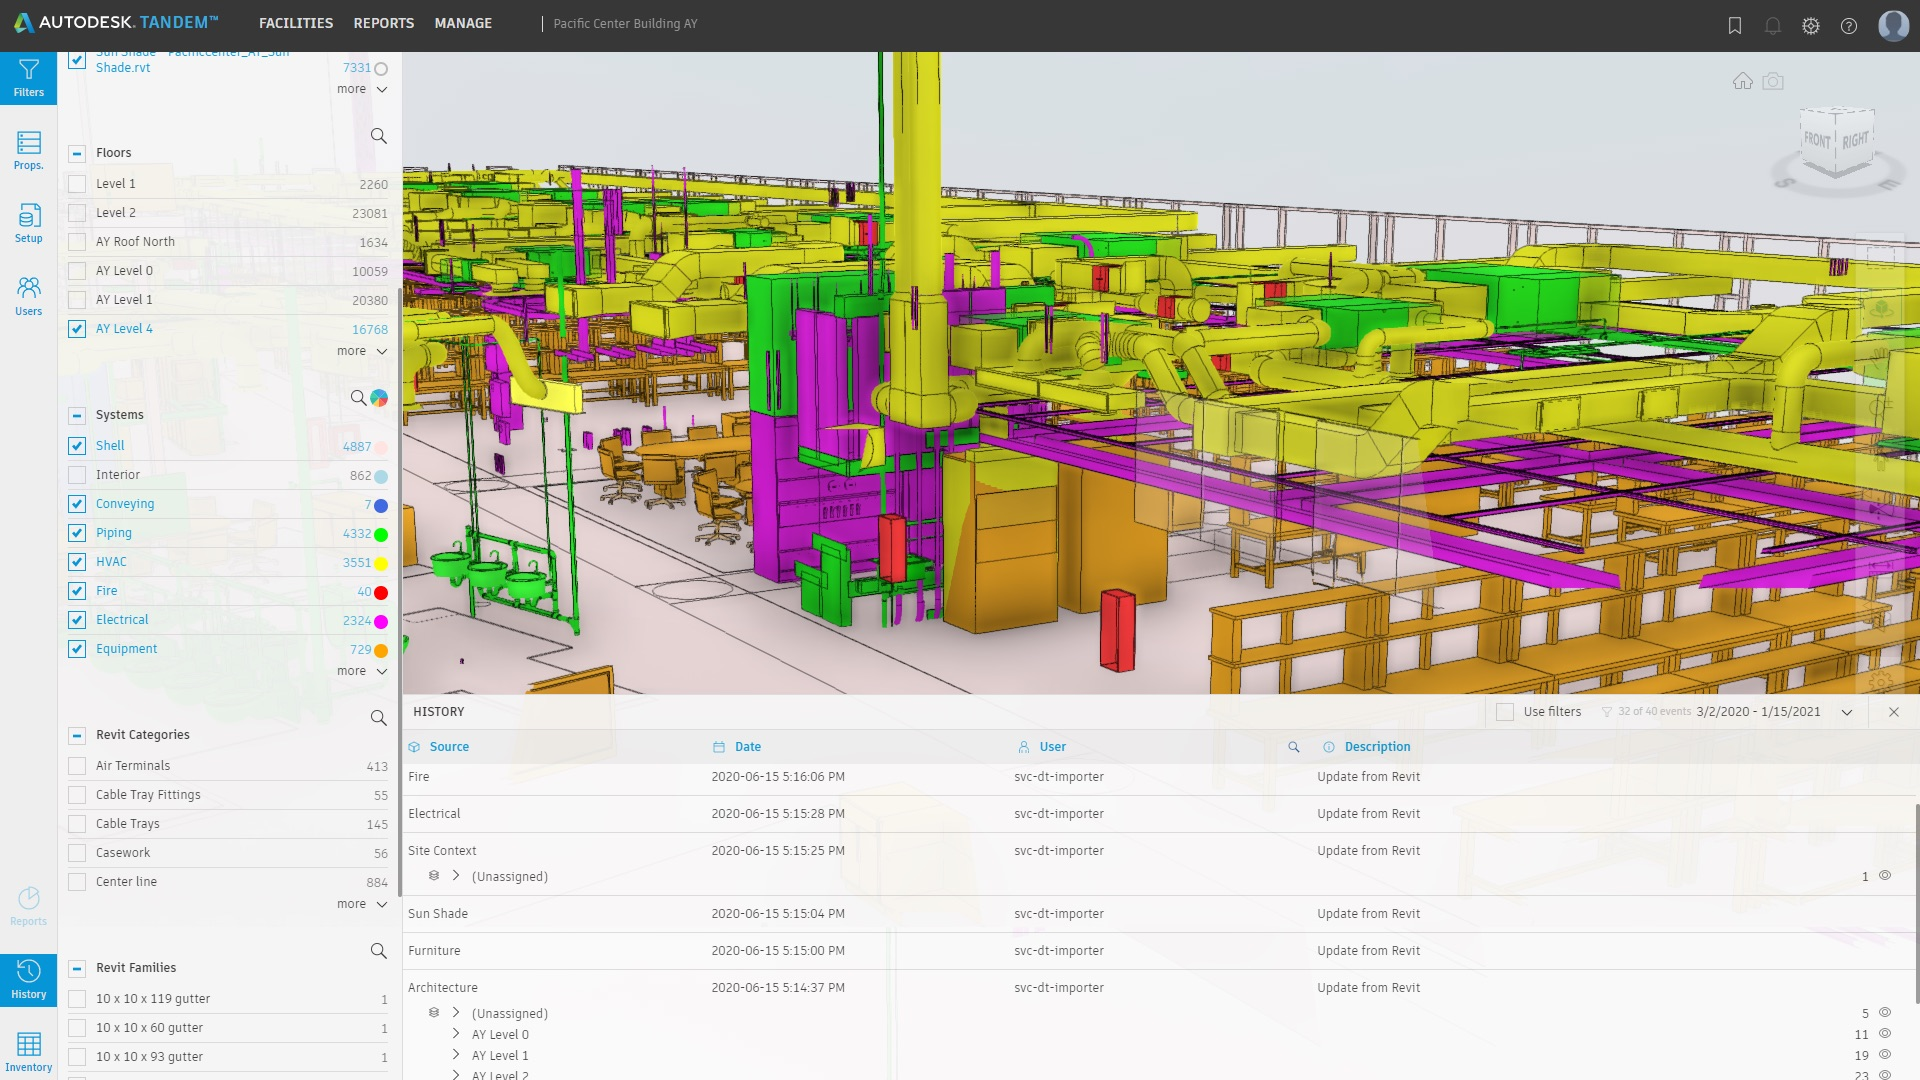 Autodesk Tandem screenshot using BIM data